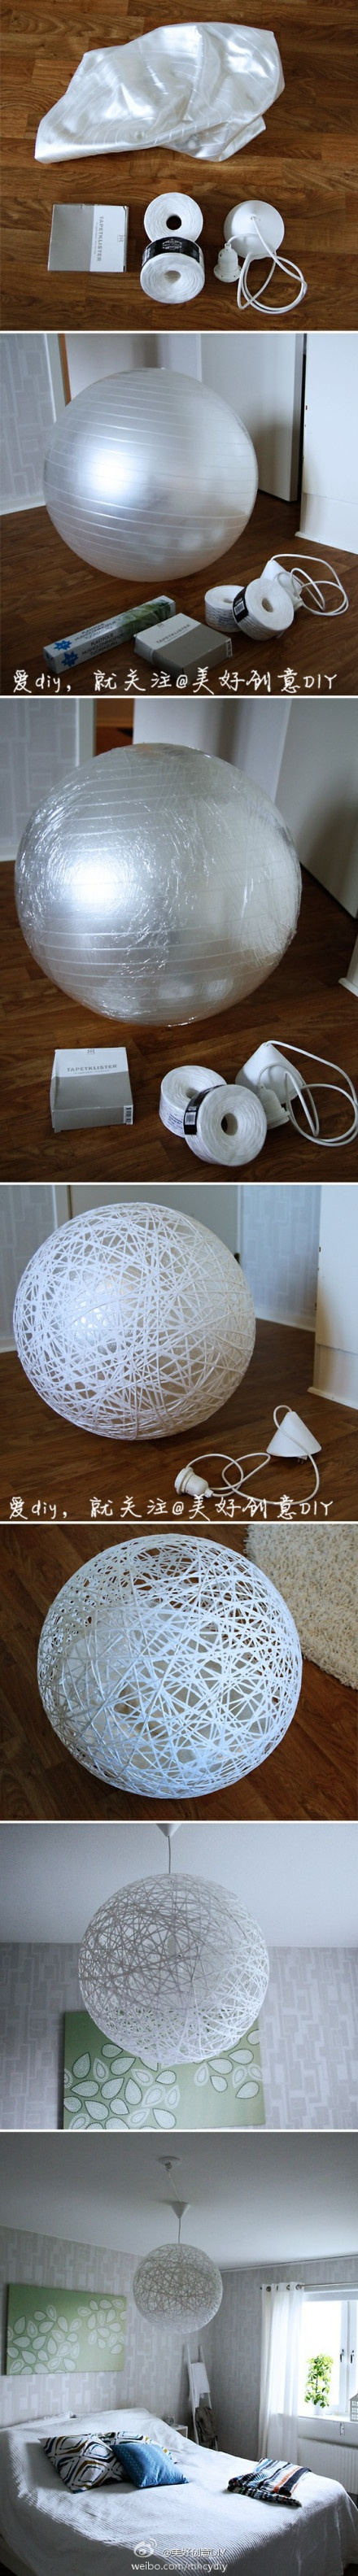 Large String lantern. @Lisa Phillips-Barton Phillips-Barton Vint, use up some of that yarn? :P